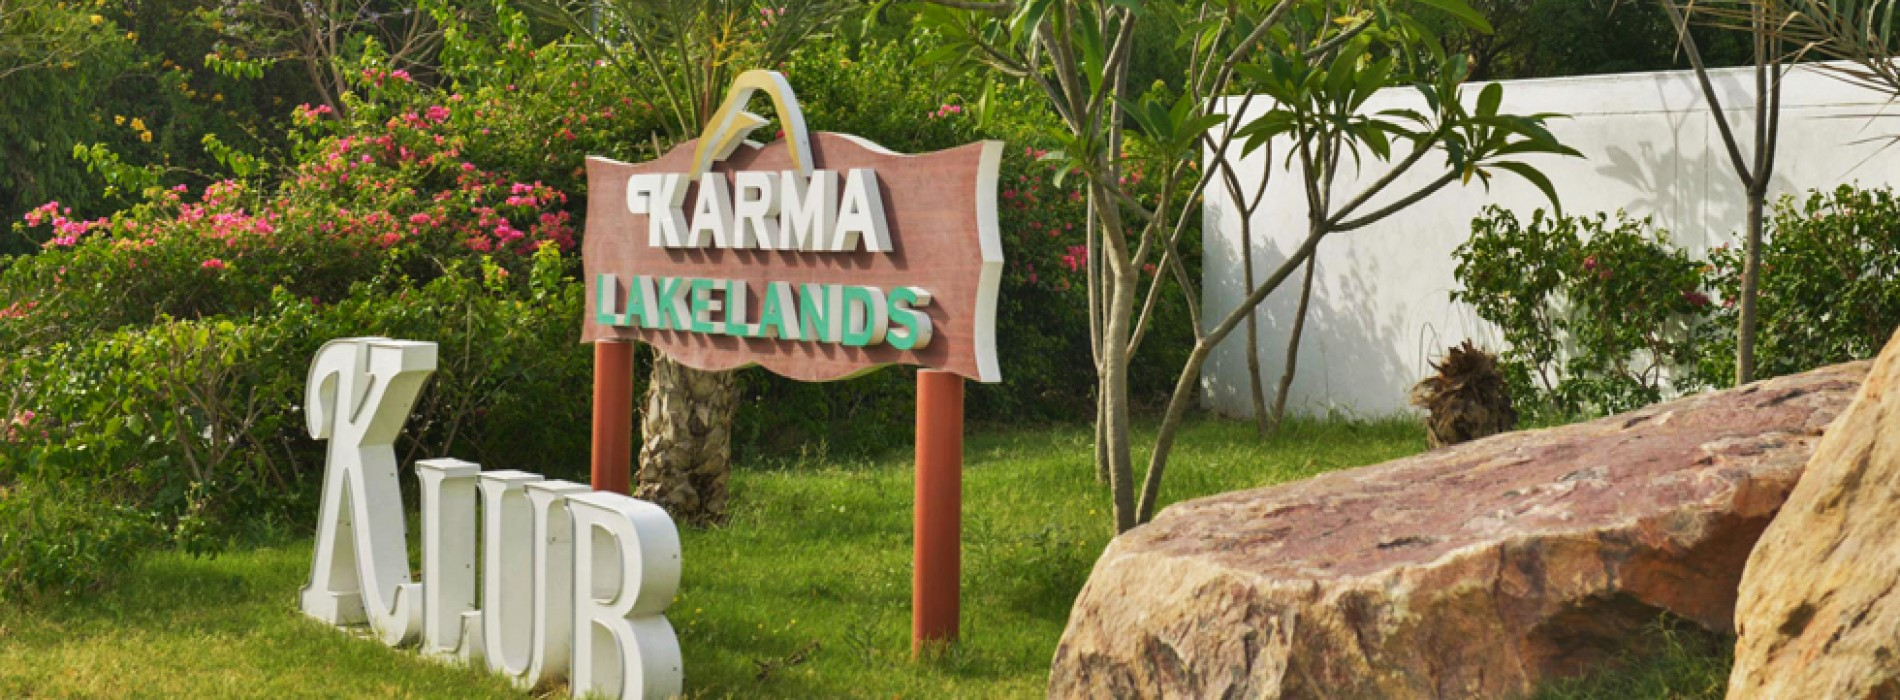 Experience a healthy lifestyle, filled with excitement & activities for everyone at Karma Lakelands